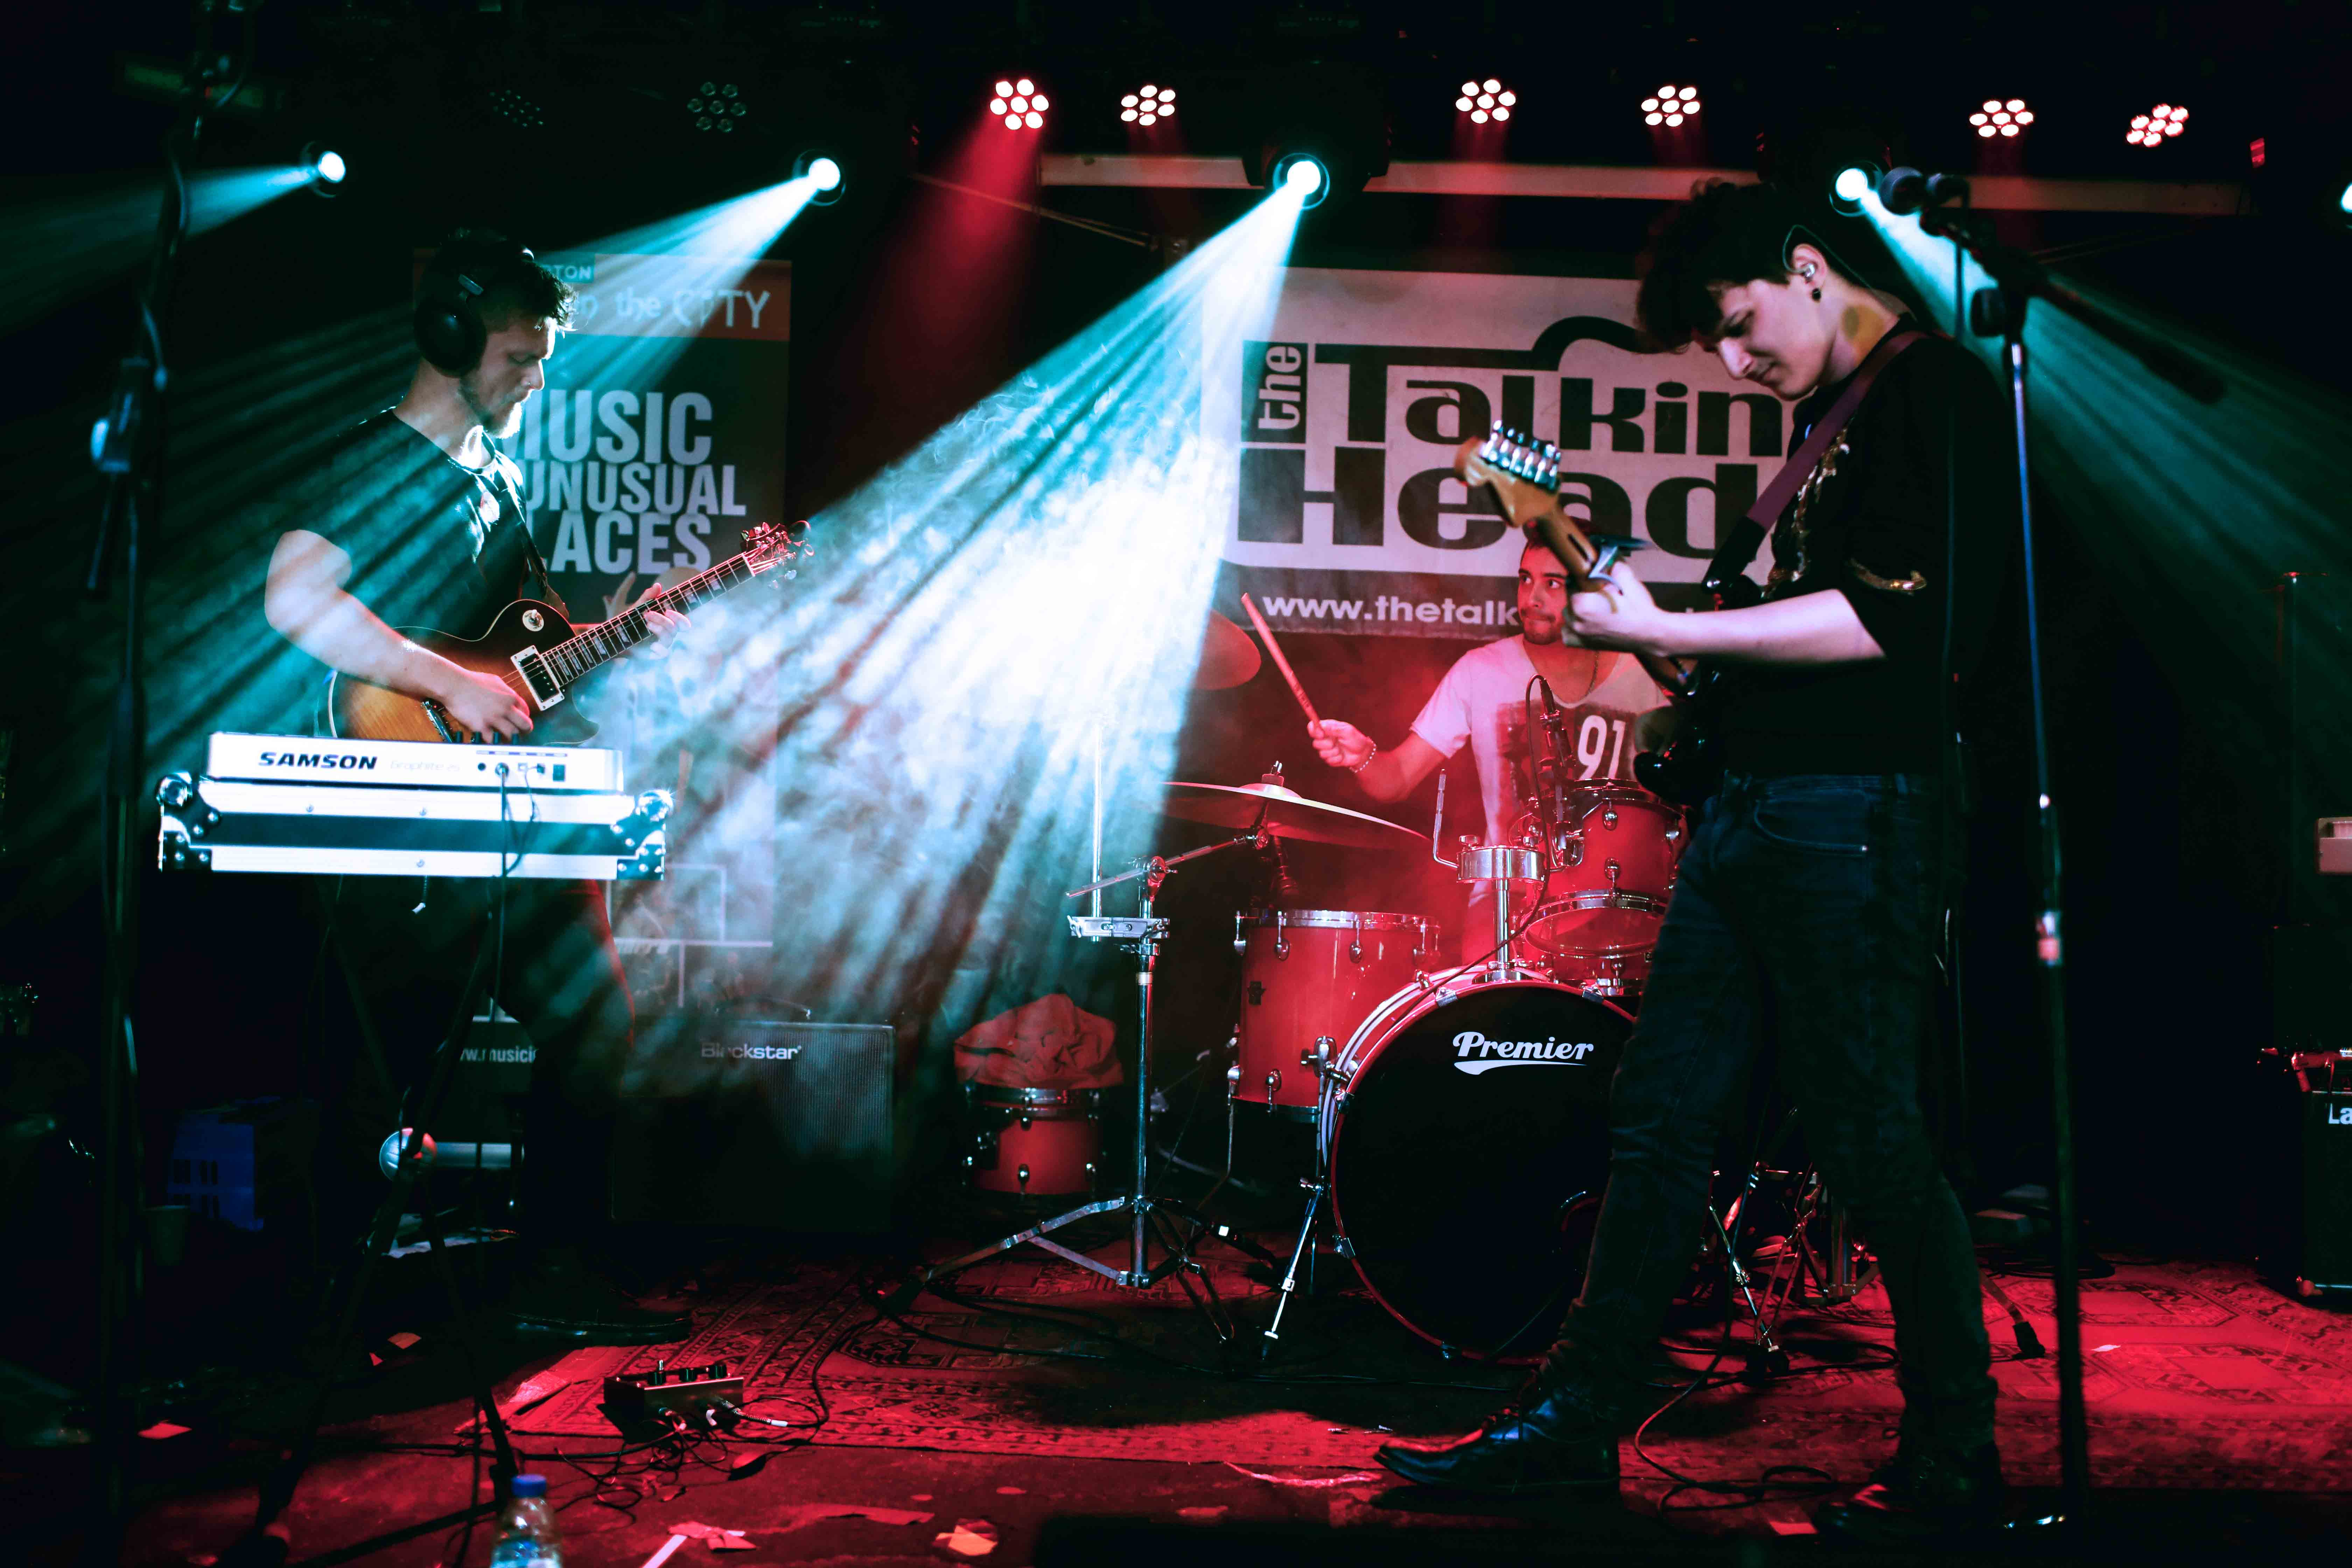 Bratis at Talking Heads as part of Music in the City Festival. Music in the city Photos